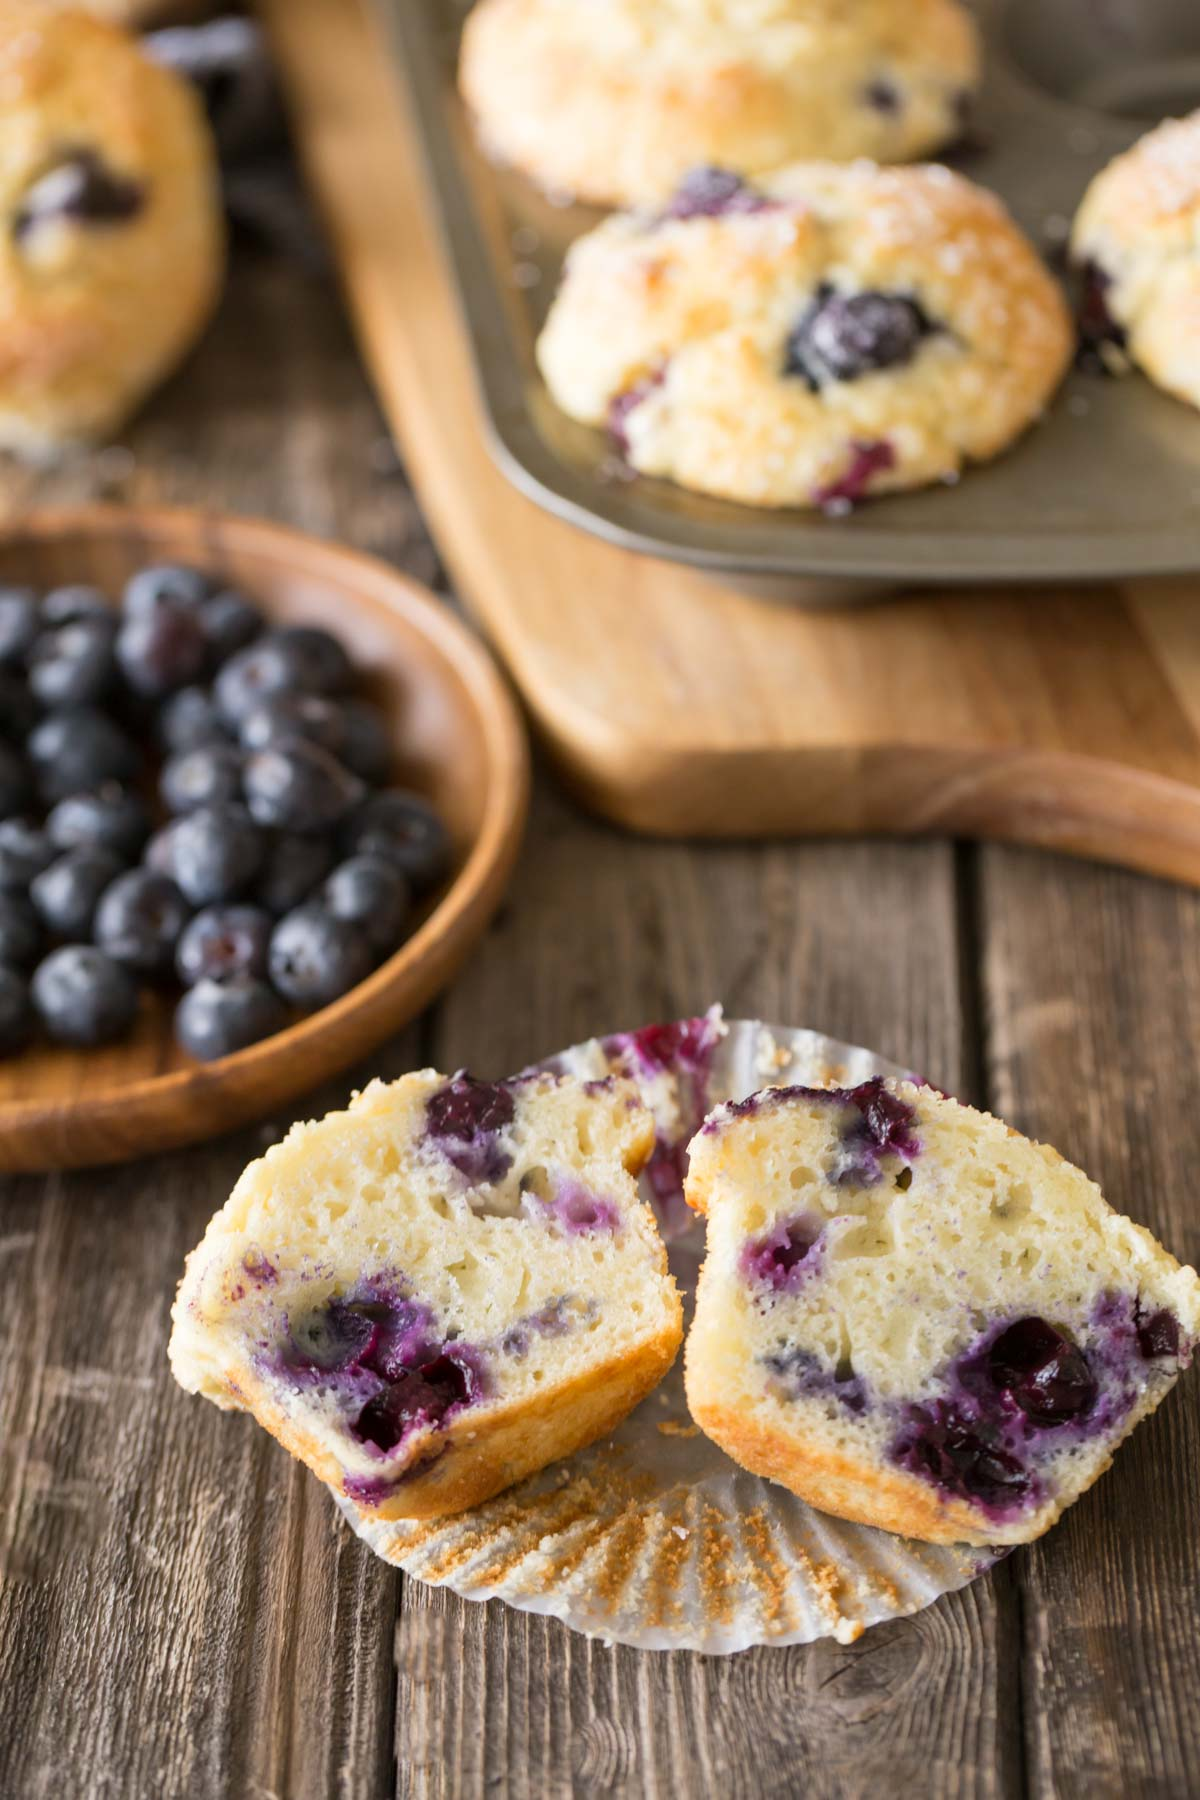 Best Ever Buttermilk Blueberry Muffins in a muffin pan with a muffin cut in half in the front of the picture.